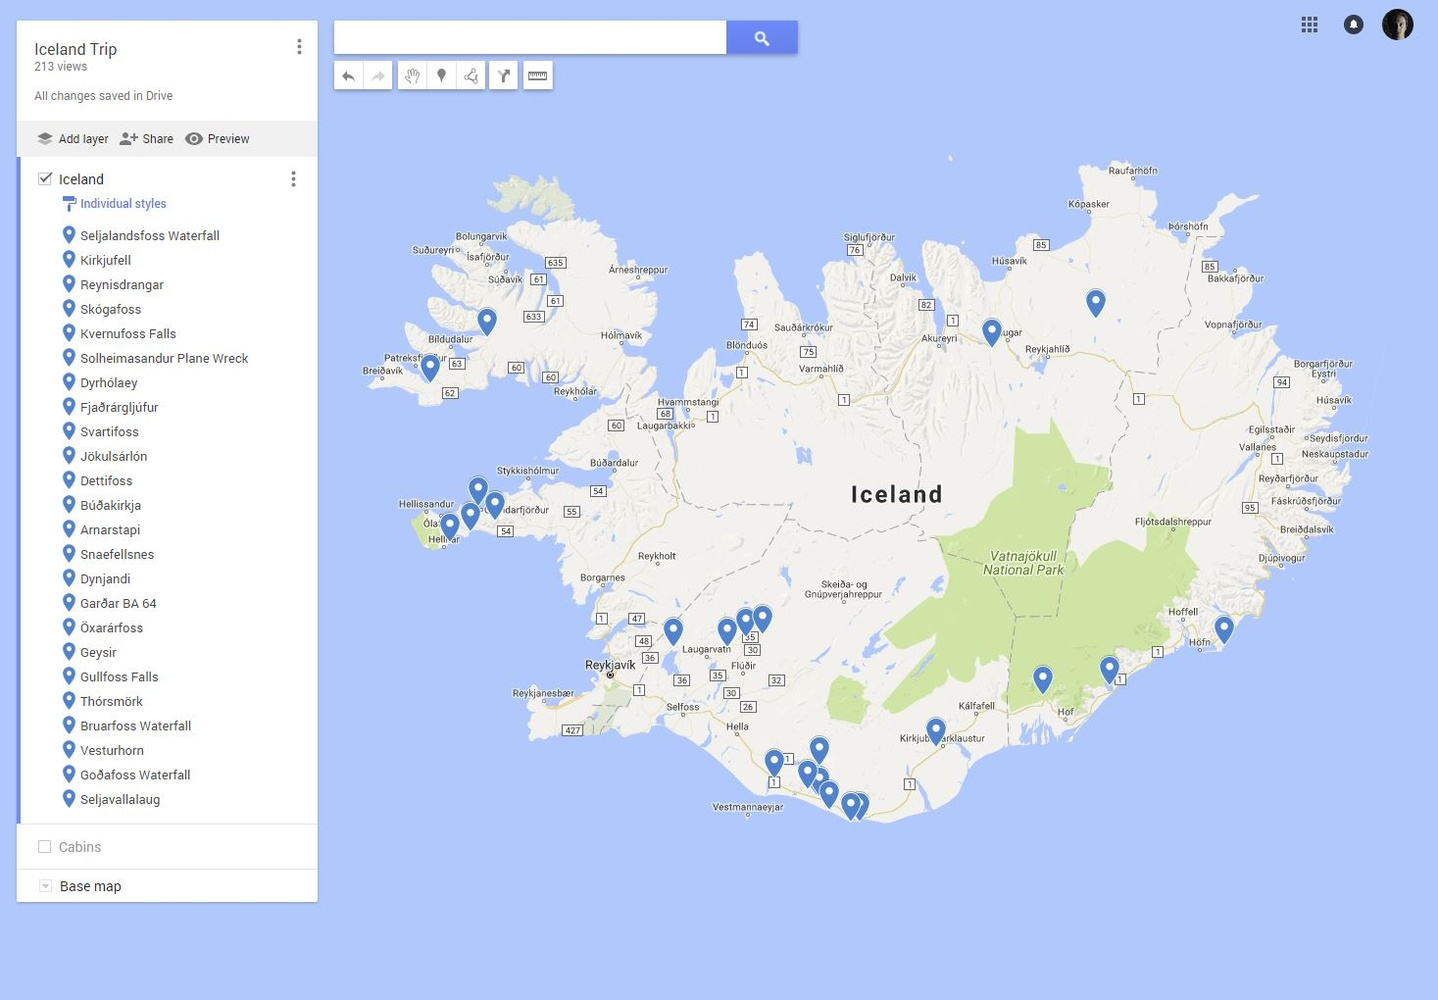 google mymap with locations of interest marked